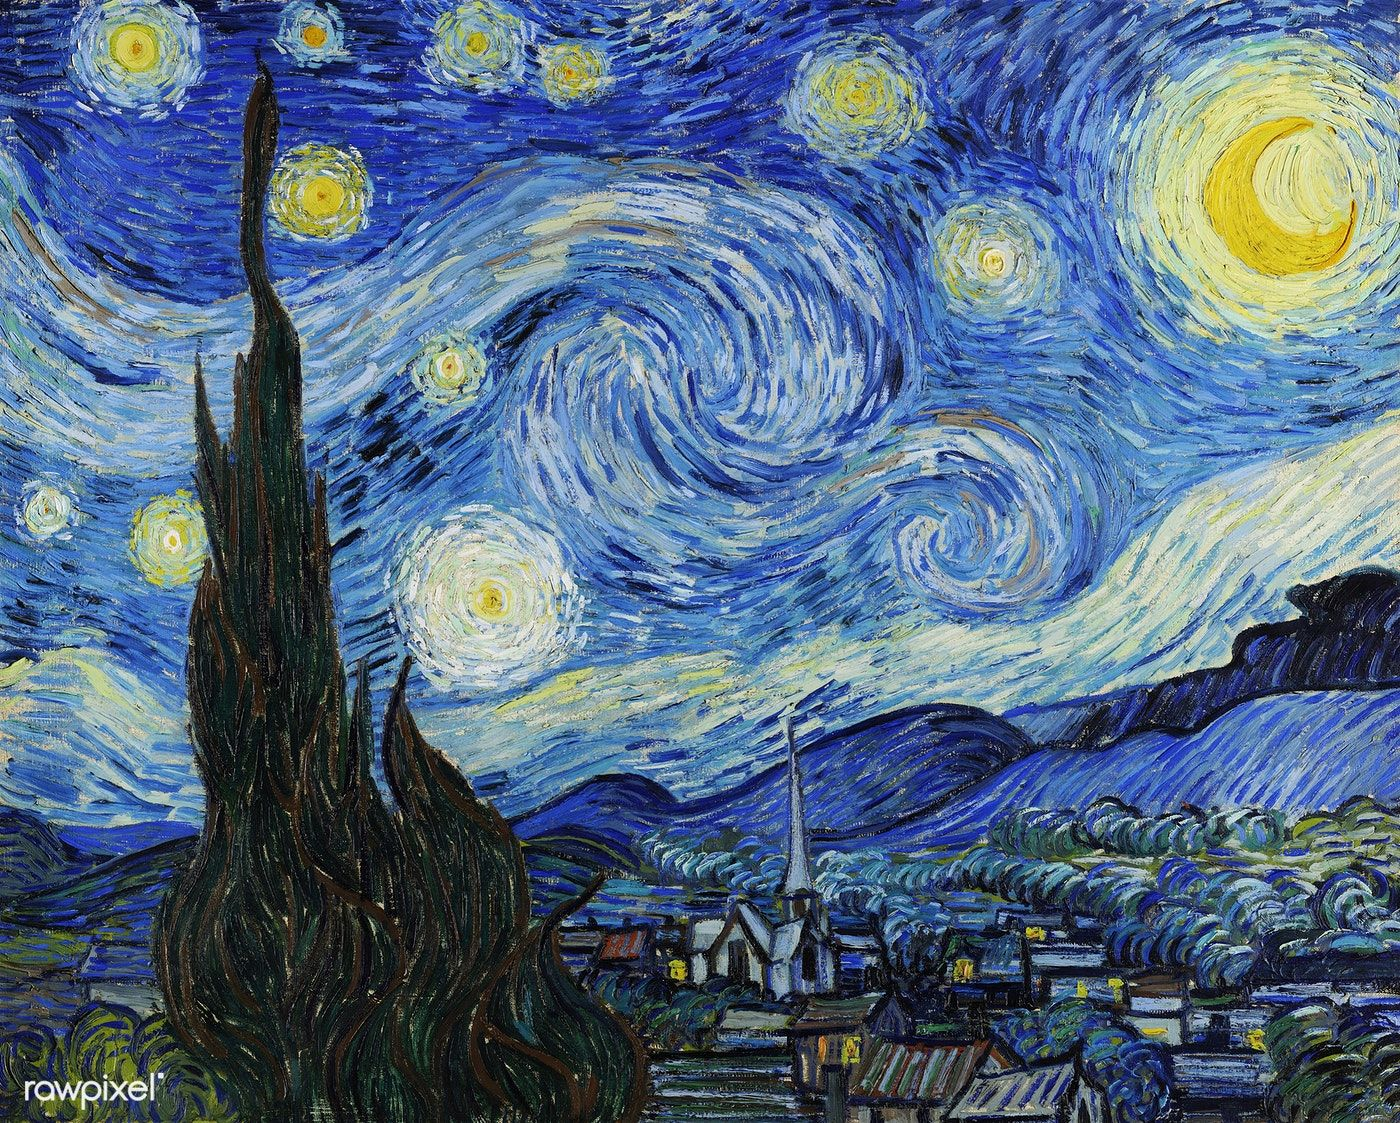 The Starry Night 1889 By Vincent Van Gogh Original From Wikimedia Commons Digitally Enhanced By Rawpixel Free Image By Rawpixel Con Immagini Vincent Van Gogh Van Gogh